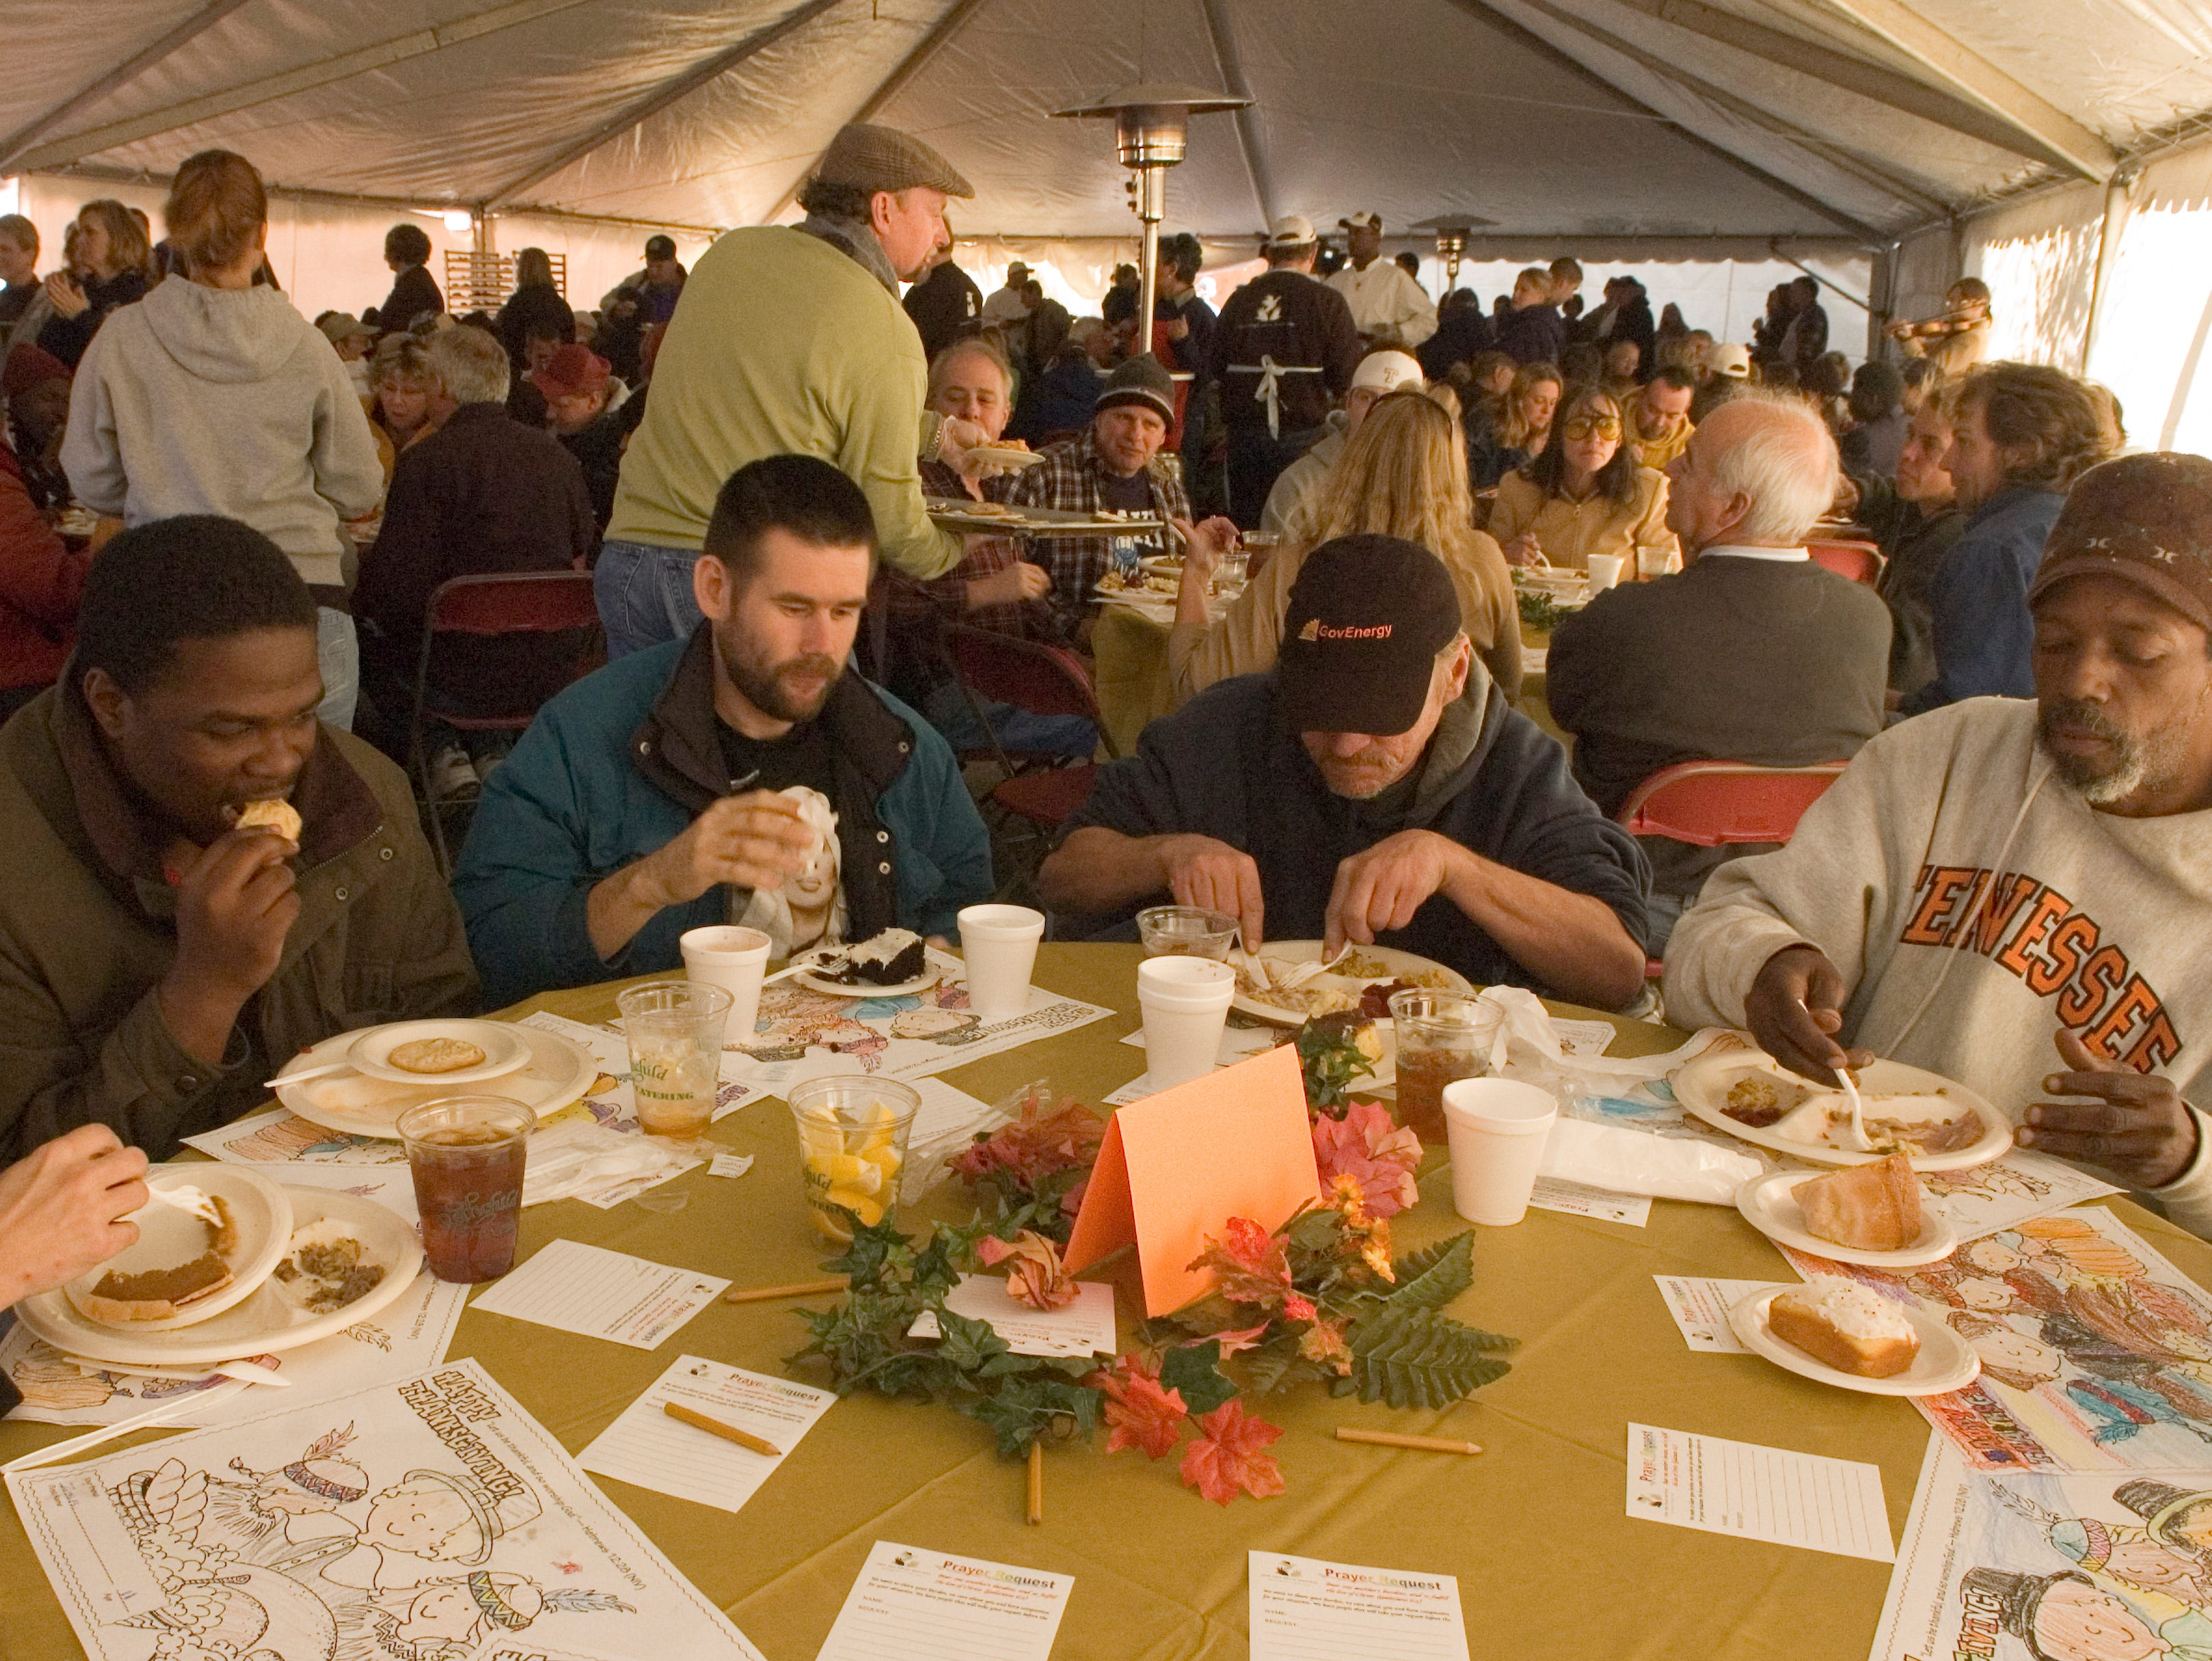 Knox Area Rescue Ministries annual Thanksgiving Tent fo Hope meal. The Knoxville Area Rescue Ministries had their Tent of Hope set up to serve a full Thanksgiving meal to the needy Thursday.   Dozens of Volunteers from all across East Tennessee were on hand to serve the homeless and hungry  a full Thanksgiving feast, complete with roasted turkey, stuffing, mashed potatoes, gravy and all the fixings. And a variety of deserts including pumpkin pie! Thursday, November 27, 2008